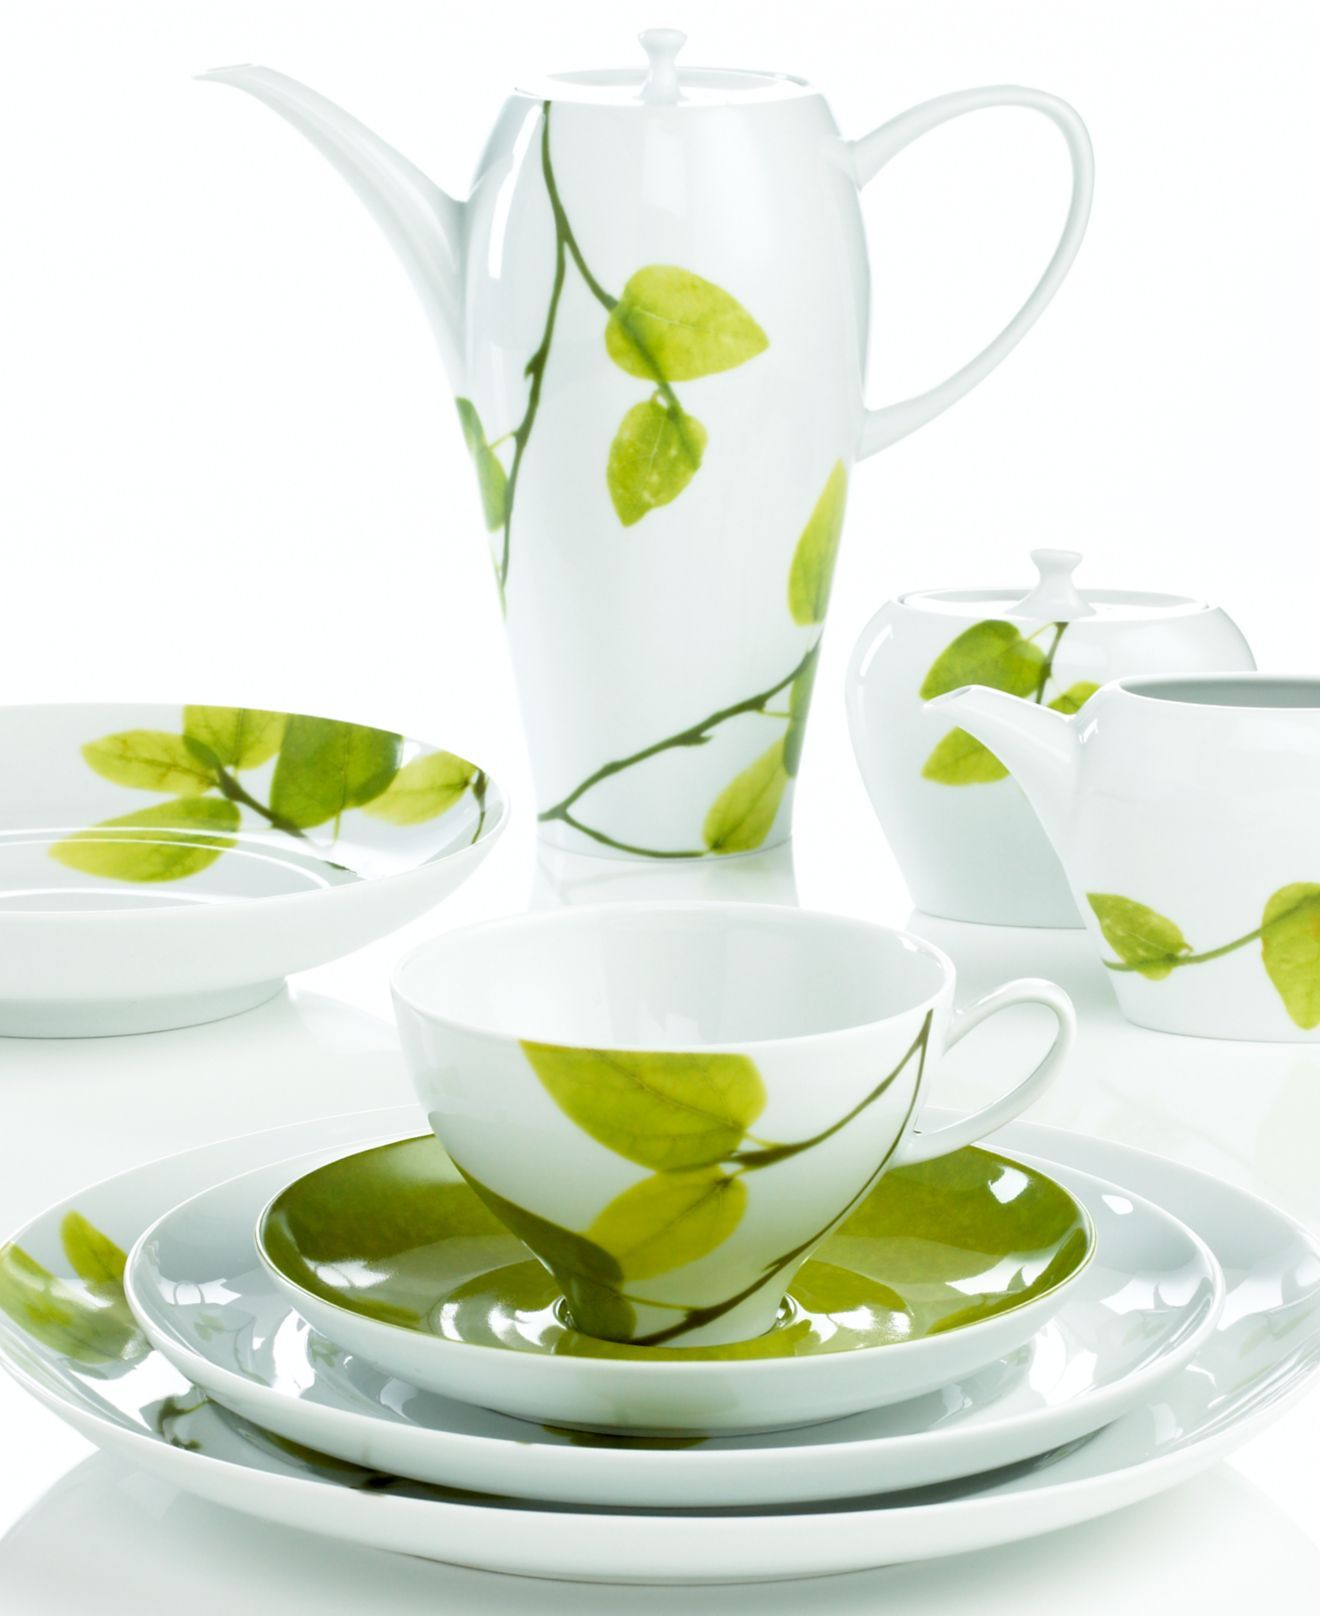 Mikasa Dinnerware Daylight Collection - Fine China - Dining \u0026 Entertaining - Macy\u0027s Bridal and  sc 1 st  Pinterest & Mikasa Dinnerware Daylight Collection - Fine China - Dining ...